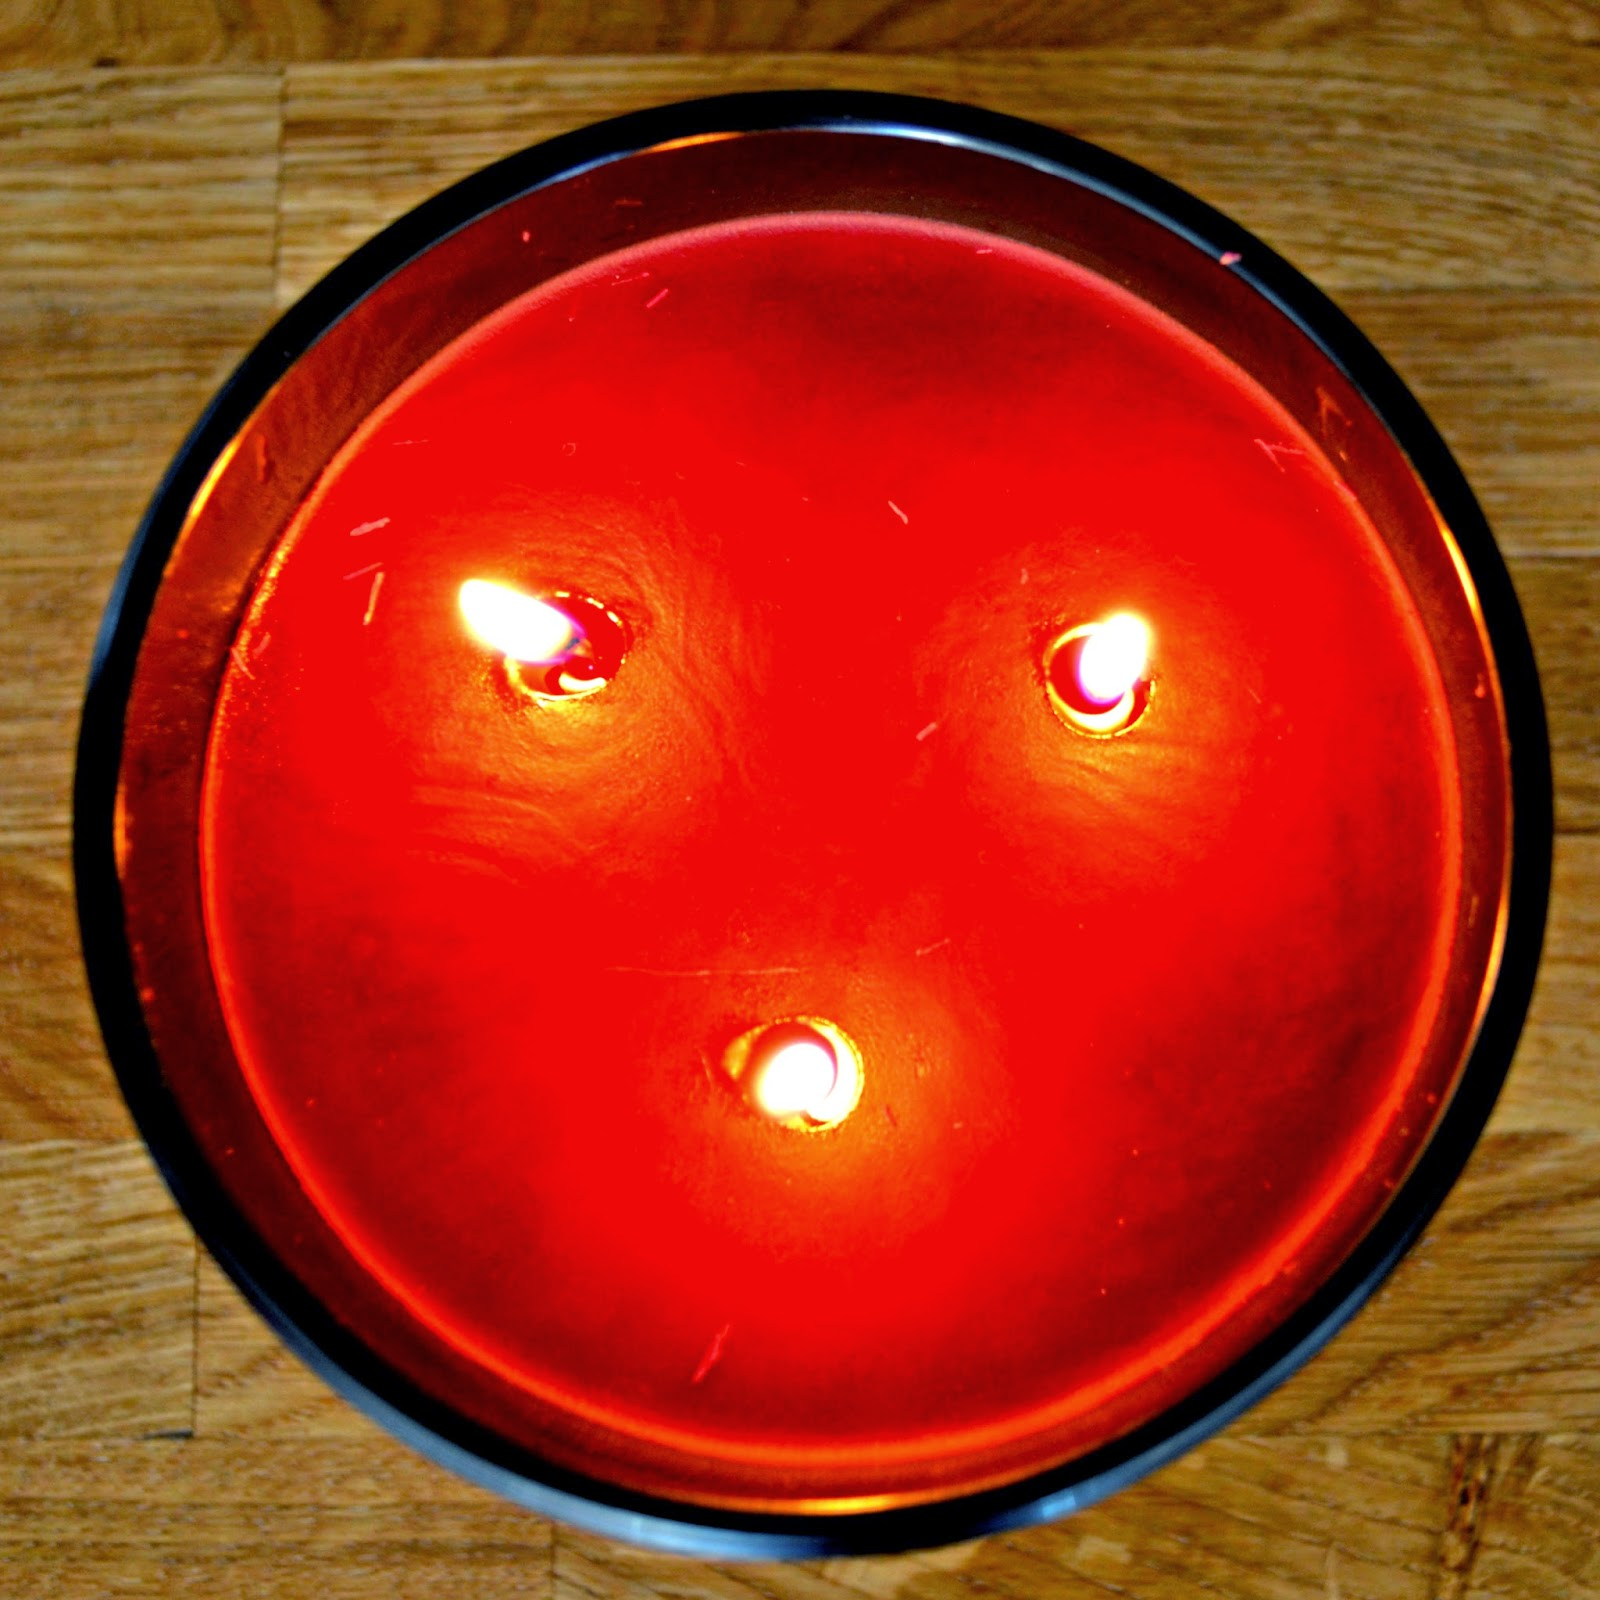 Rituals Sacred Fire candle